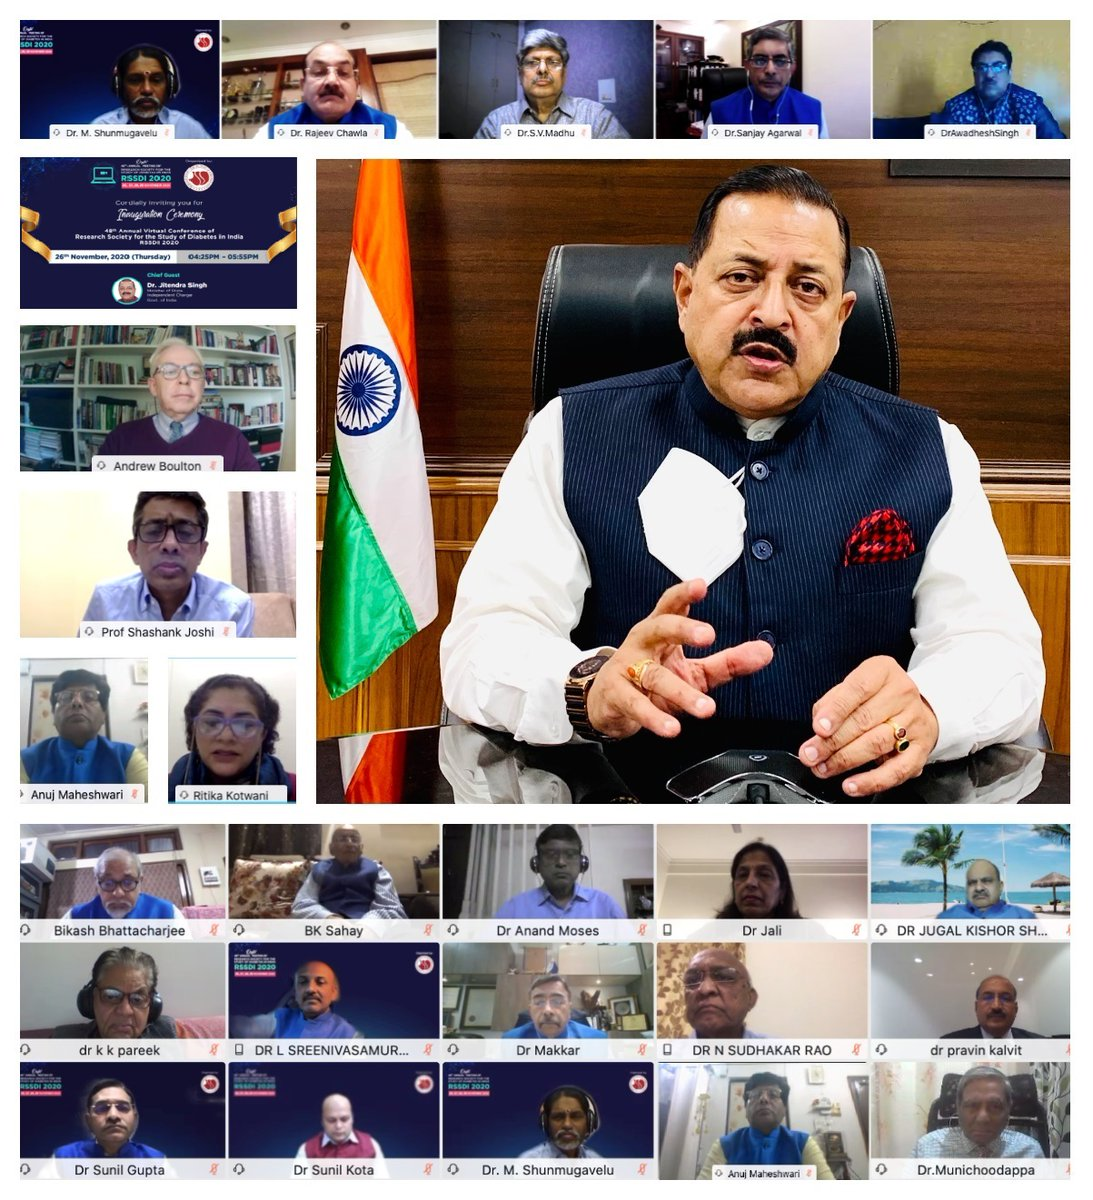 test Twitter Media - Delivered Inaugural Address through virtual mode, as chief guest at 4-day Annual #Diabetes Conference of RSSDI. Attended by leading luminaries like Dr Andrew Boulton, President International Diabetes federation. Must compliment Dr Banshi Saboo for organizing despite pandemic. https://t.co/lMyTMEOZaF